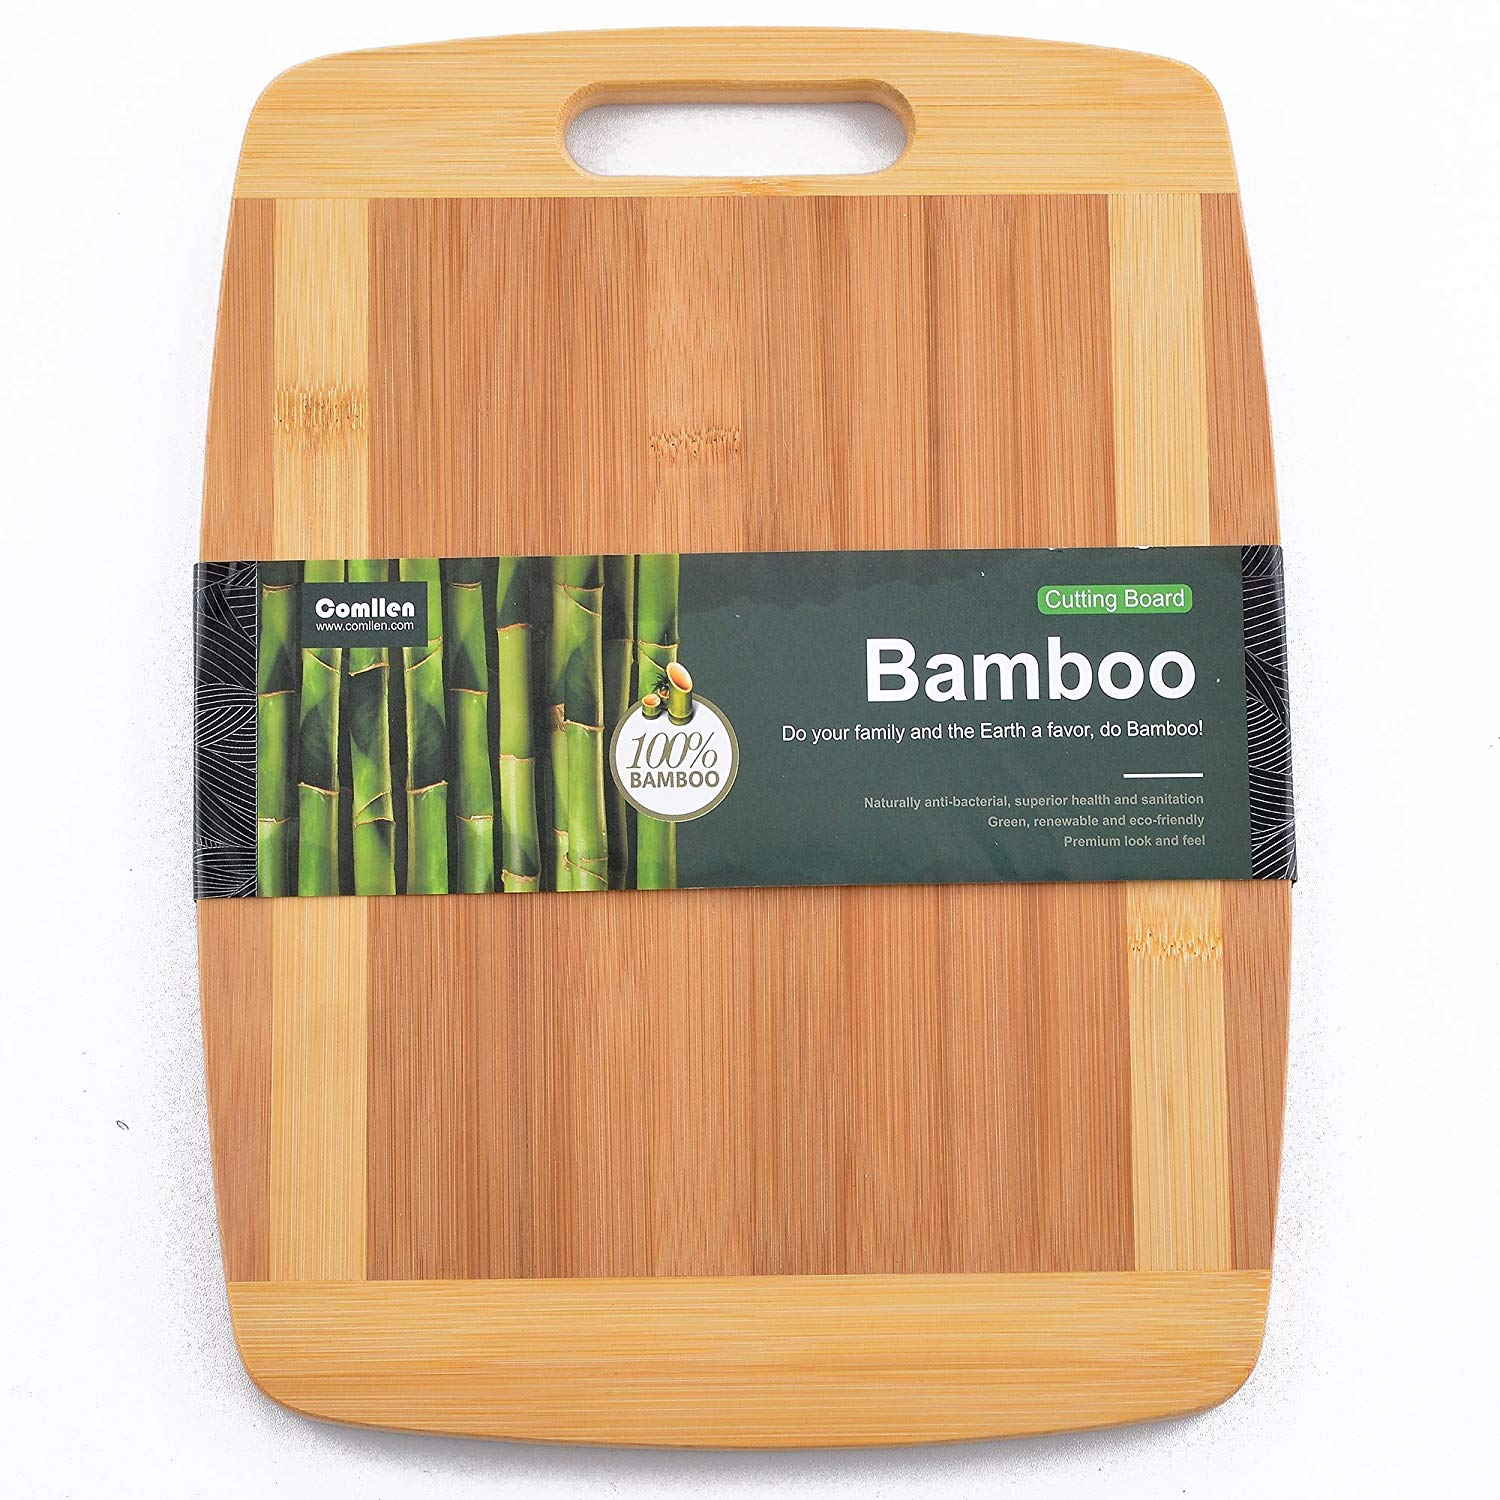 """Bamboo Cutting Board, Comllen Extra Large 13""""x 9.8"""" Bamboo Wood Cutting Board, Strong Thick Kitchen Chopping Board"""